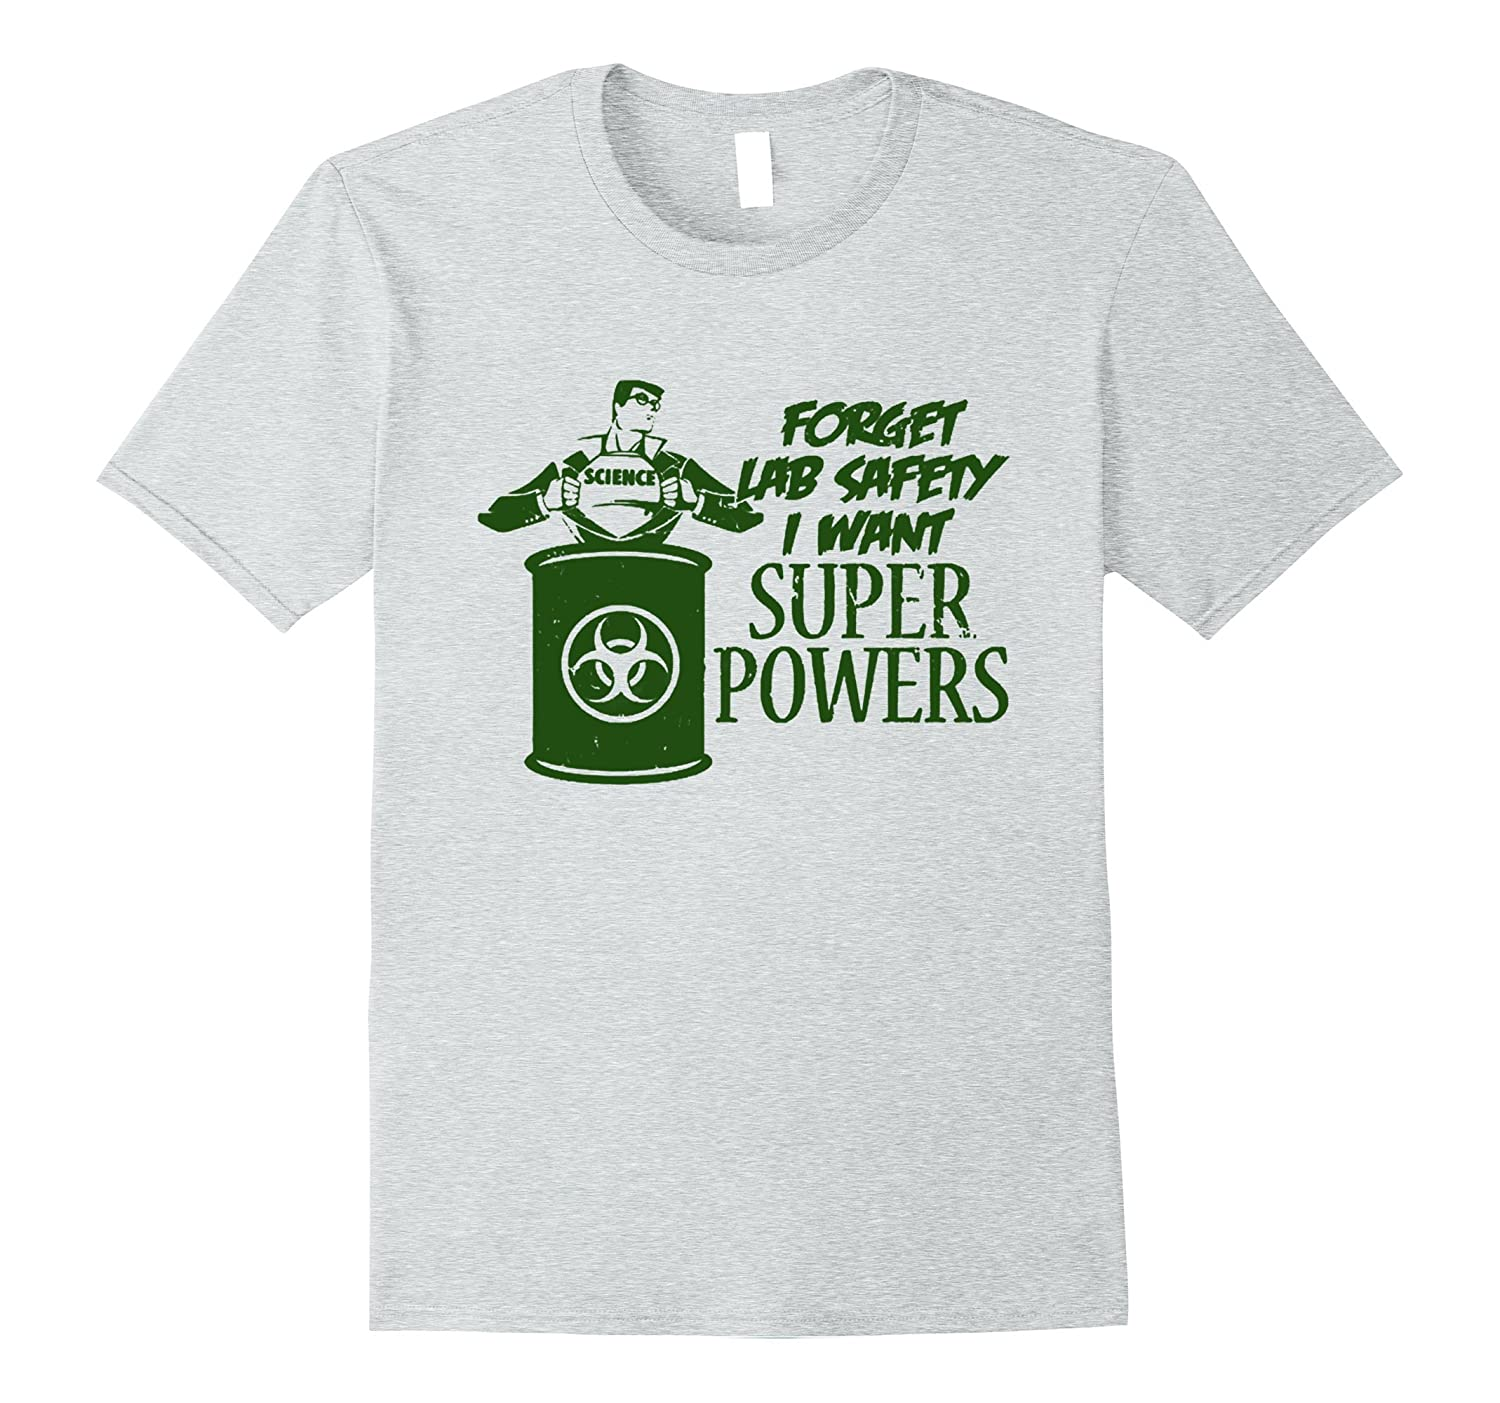 Funny Scientist Tshirts Forget Lab Safety I Want Super Power-CD